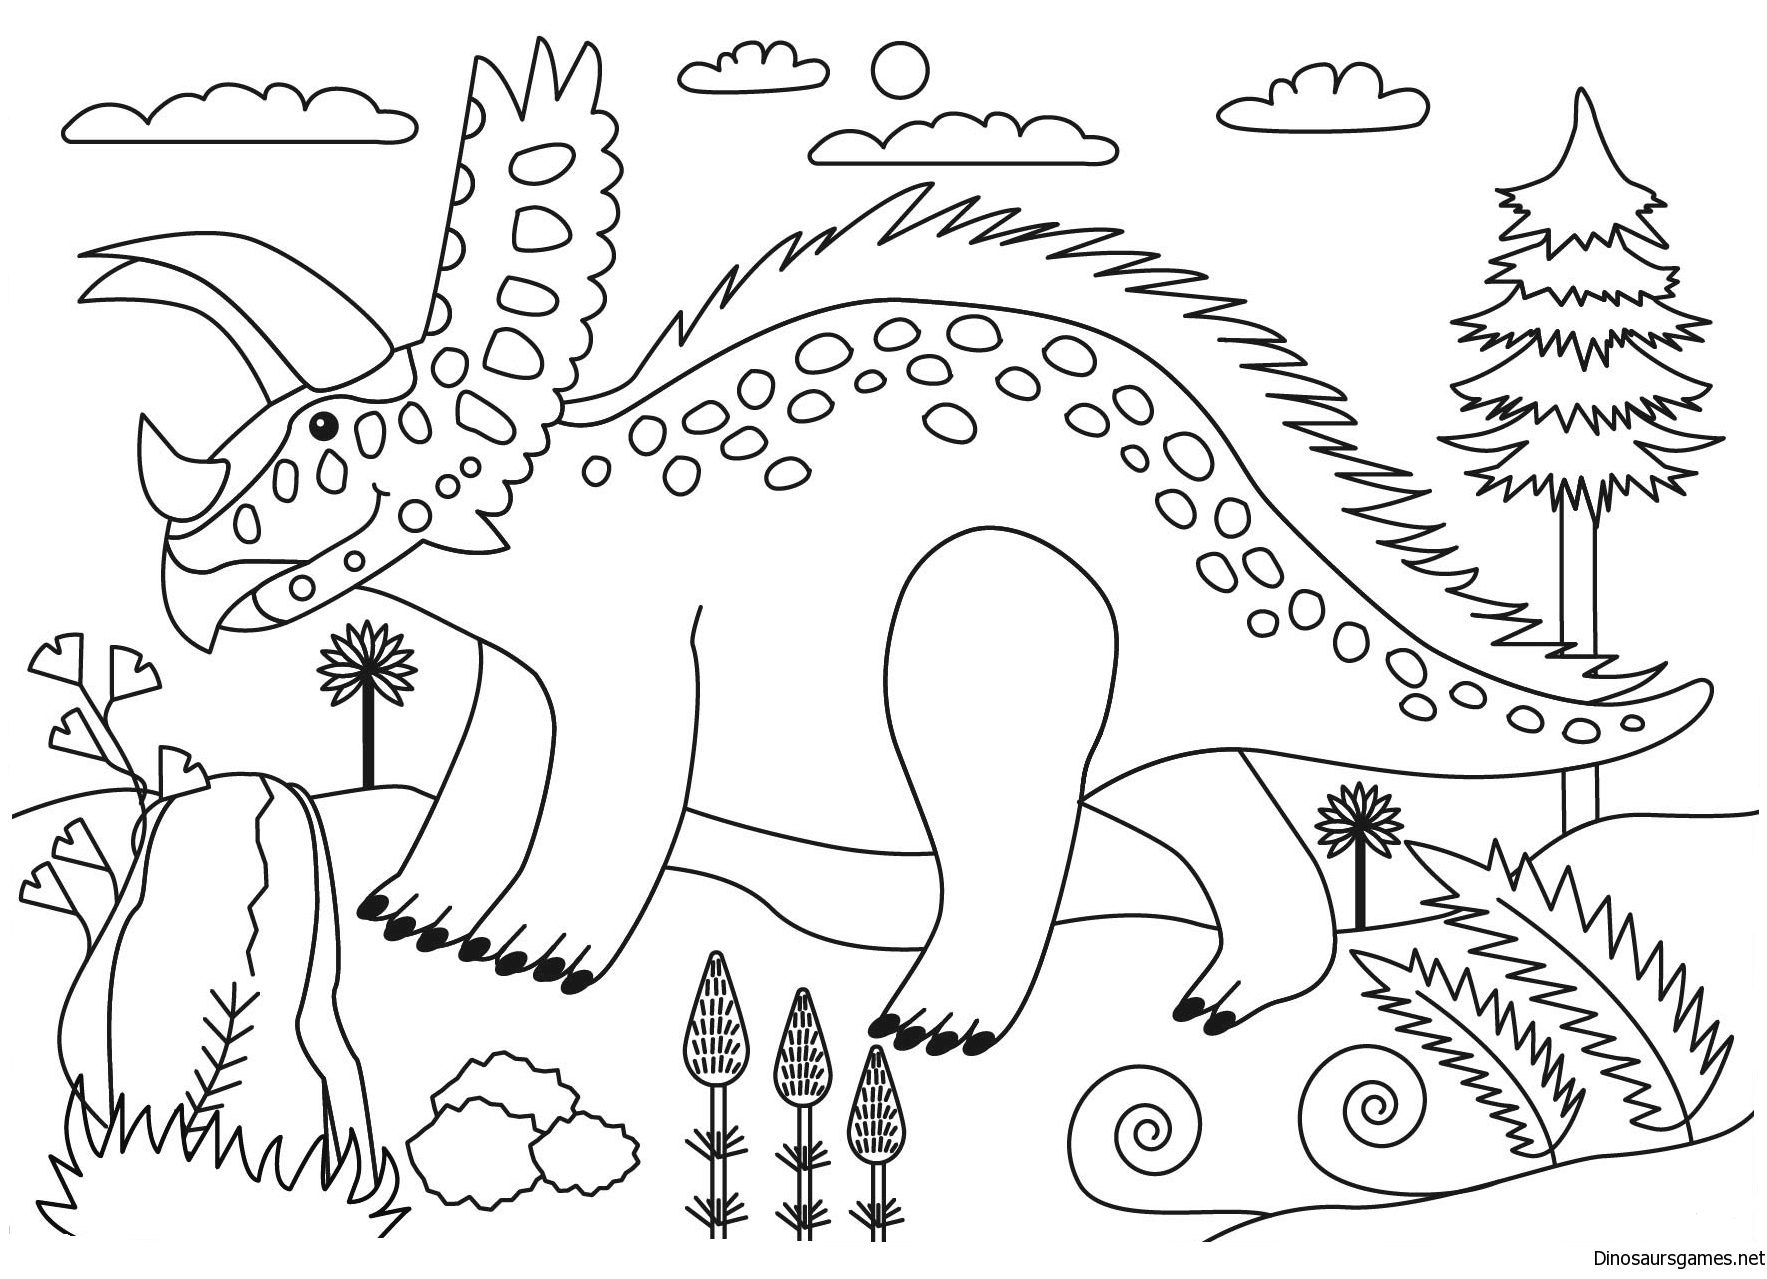 Pentaceratops Dinosaur Coloring Page